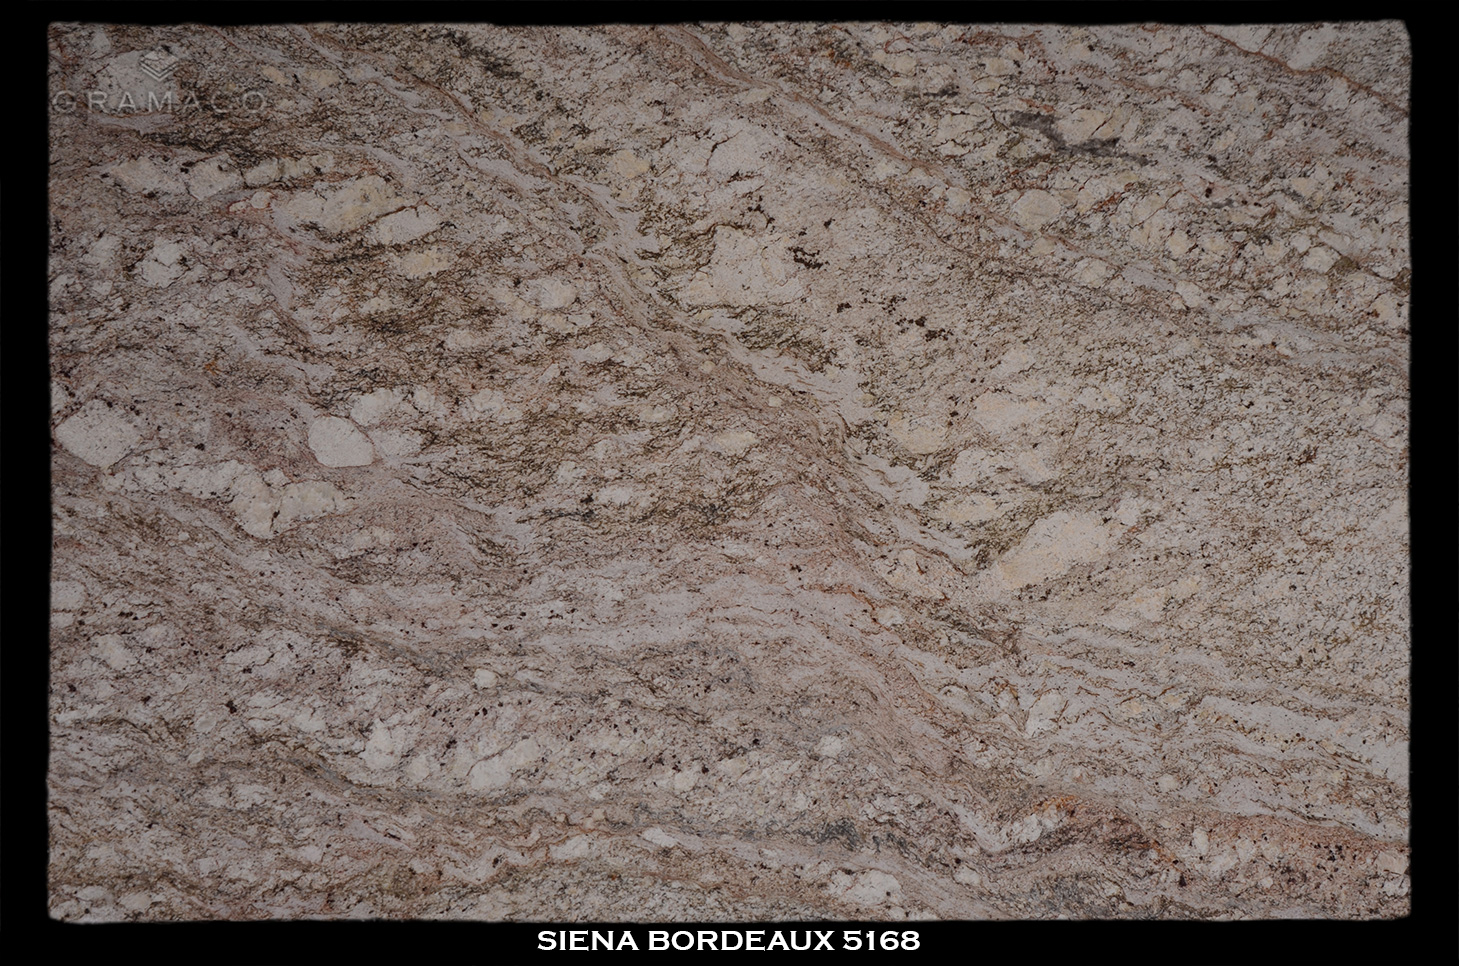 siena-bordeaux-5168-slab